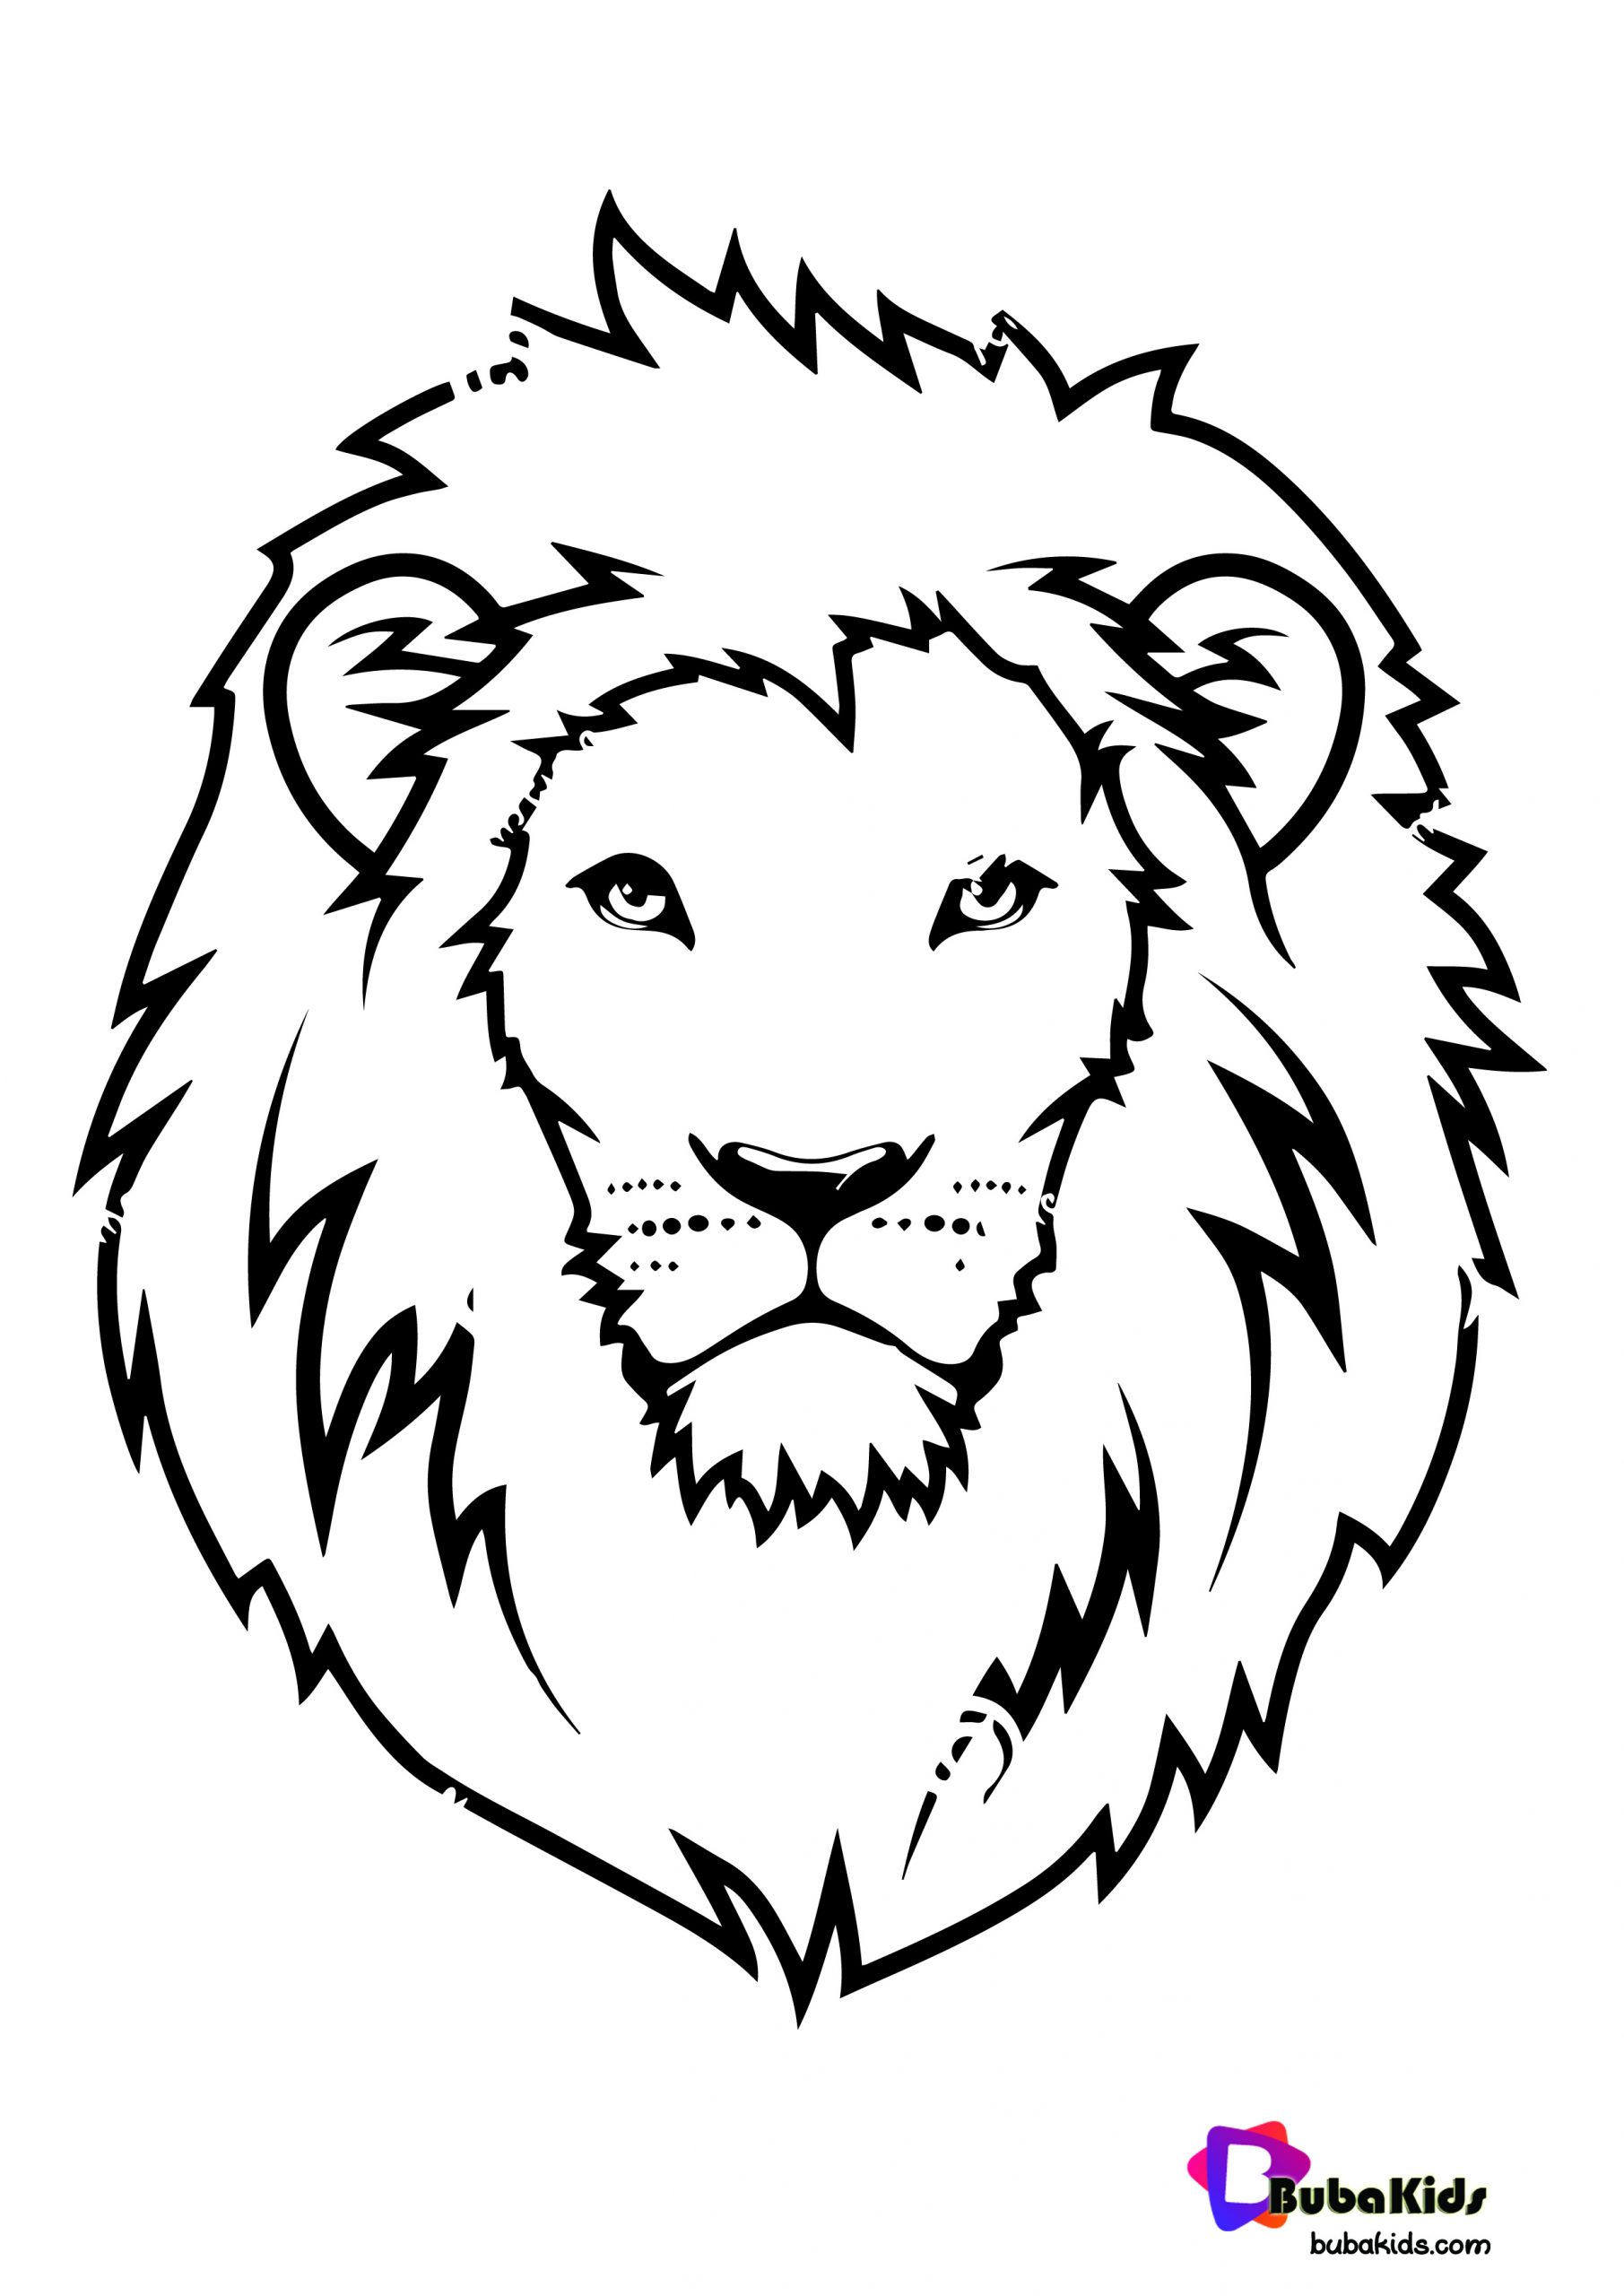 lion face coloring page lion face coloring page bubakidscom face coloring lion page